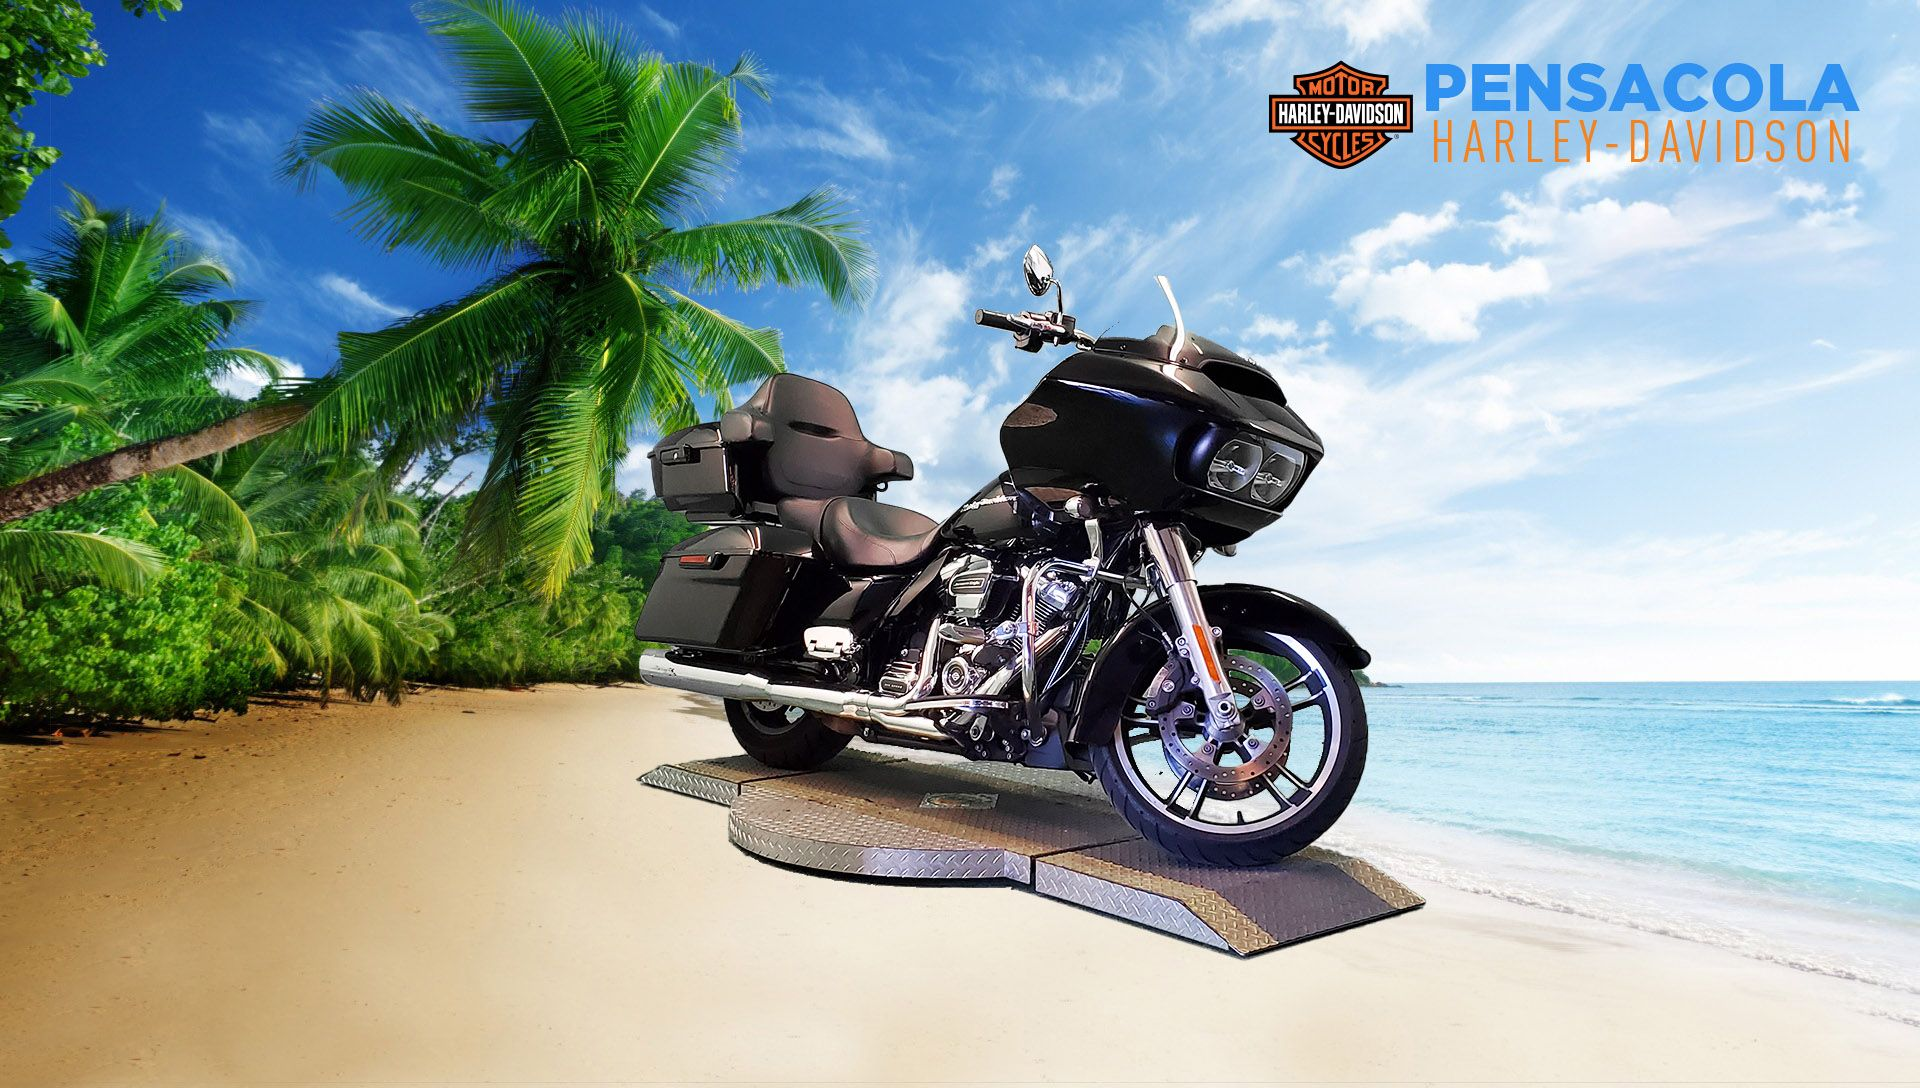 Certified Pre-Owned 2017 Harley-Davidson Road Glide Special FLTRXS